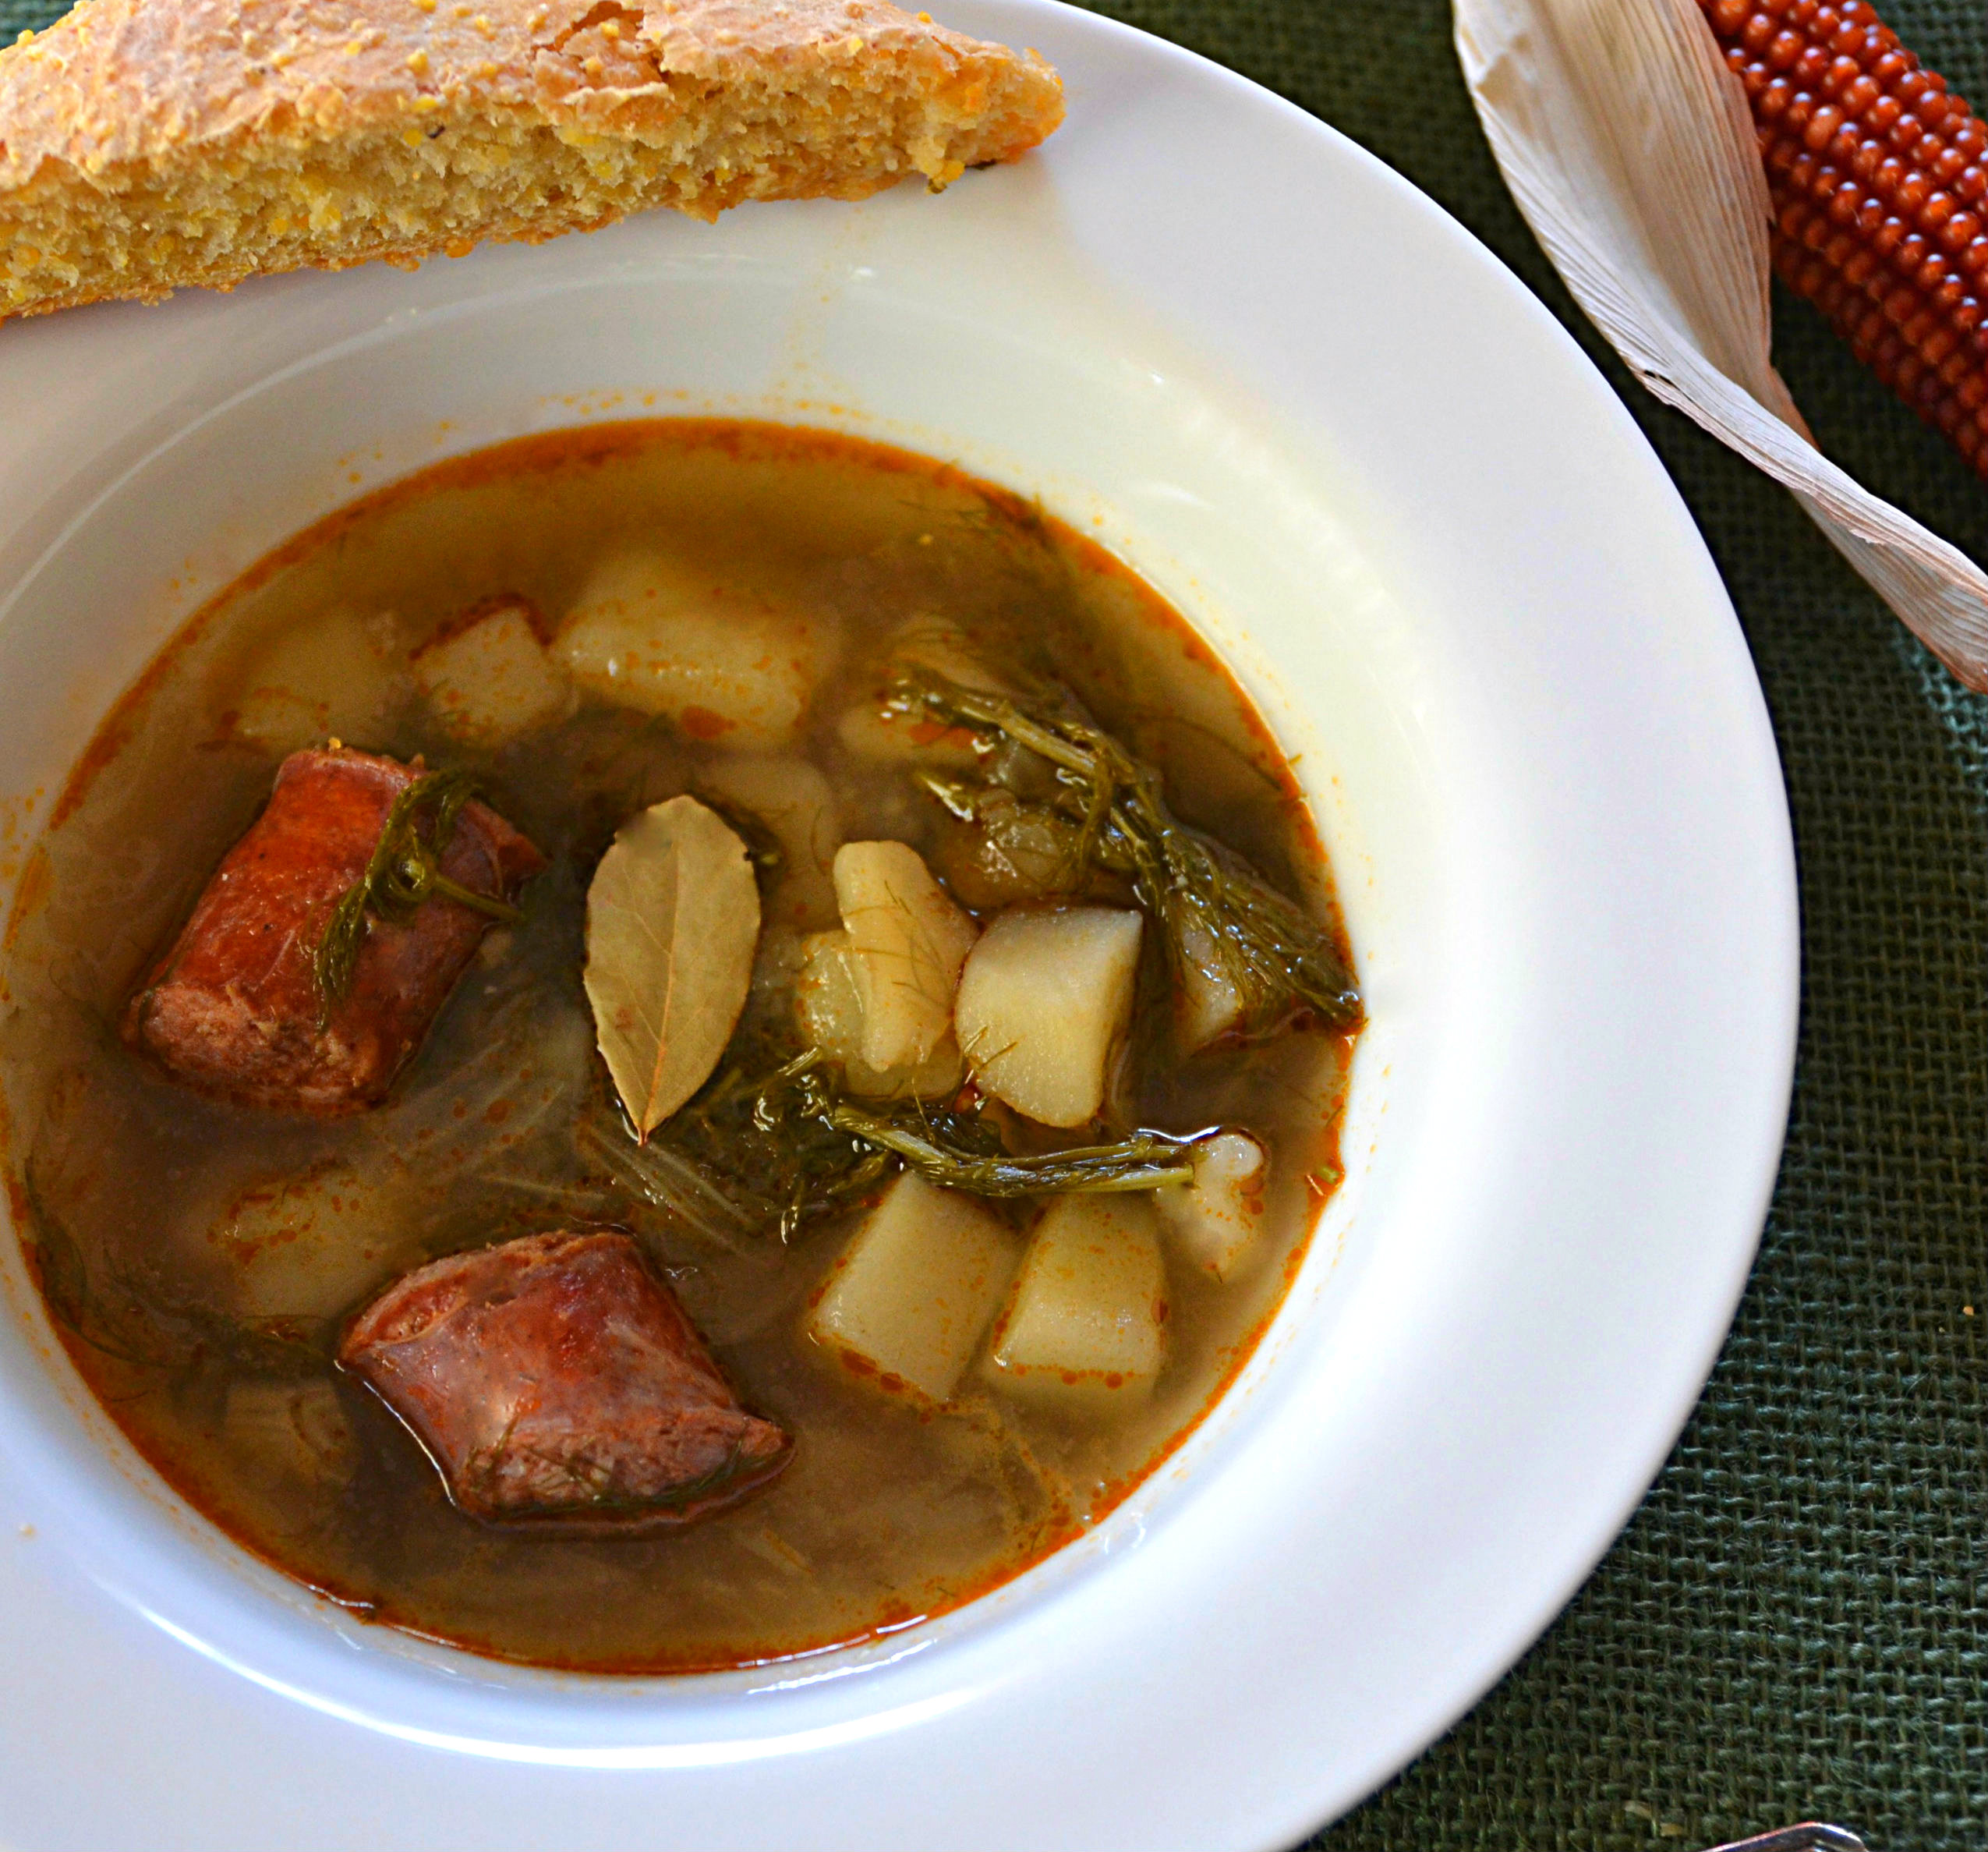 Rustic Anise Soup